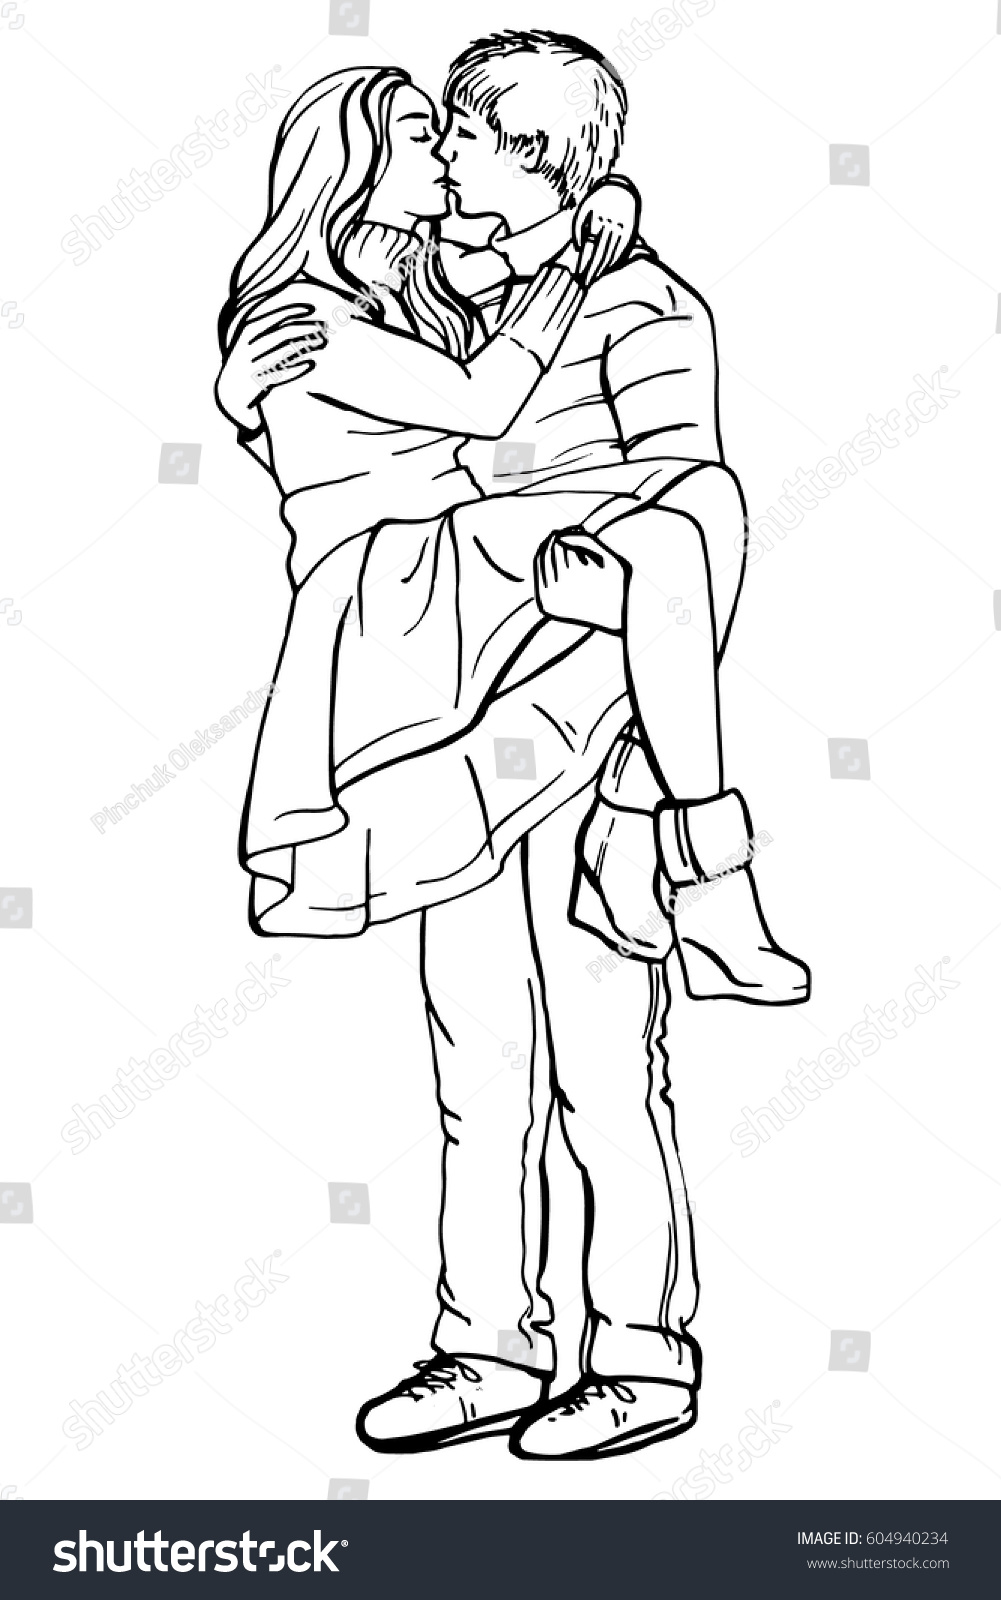 Young couple in love.Sensual Ink sketch portrait of young stylish couple. Embraces of a loving couple, couple hugging and flirting, kissing. Hand drawn illustration.